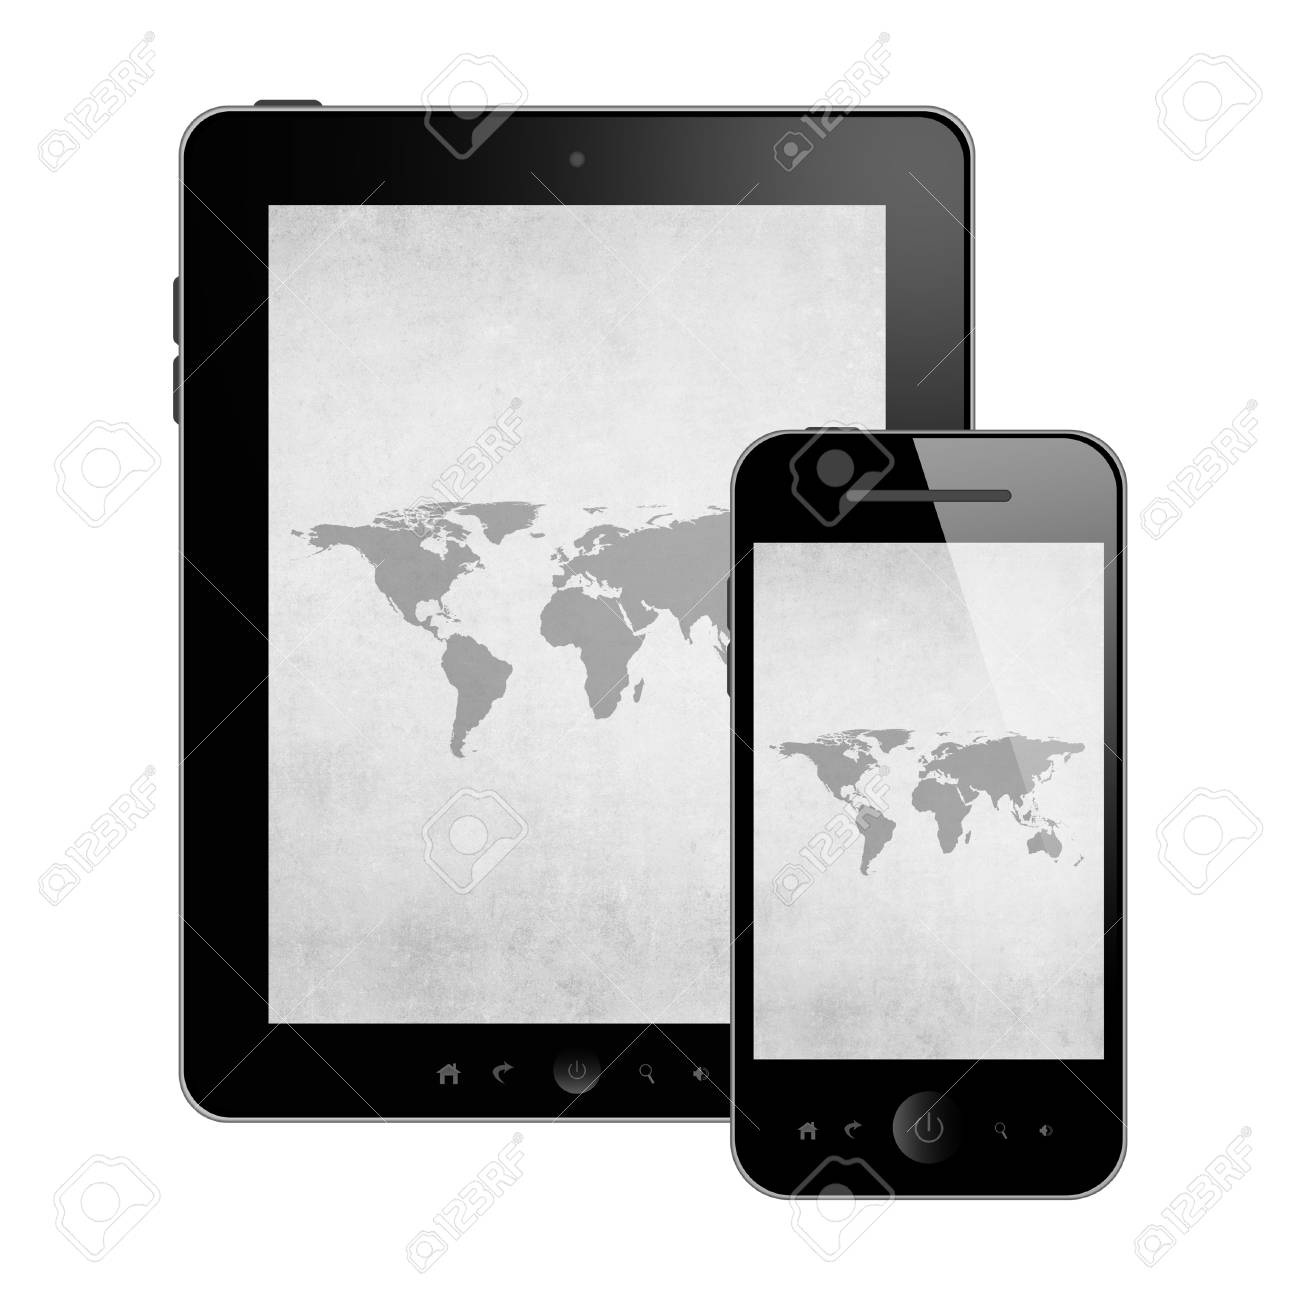 Mobile phone and tablet pc Stock Photo - 25093986